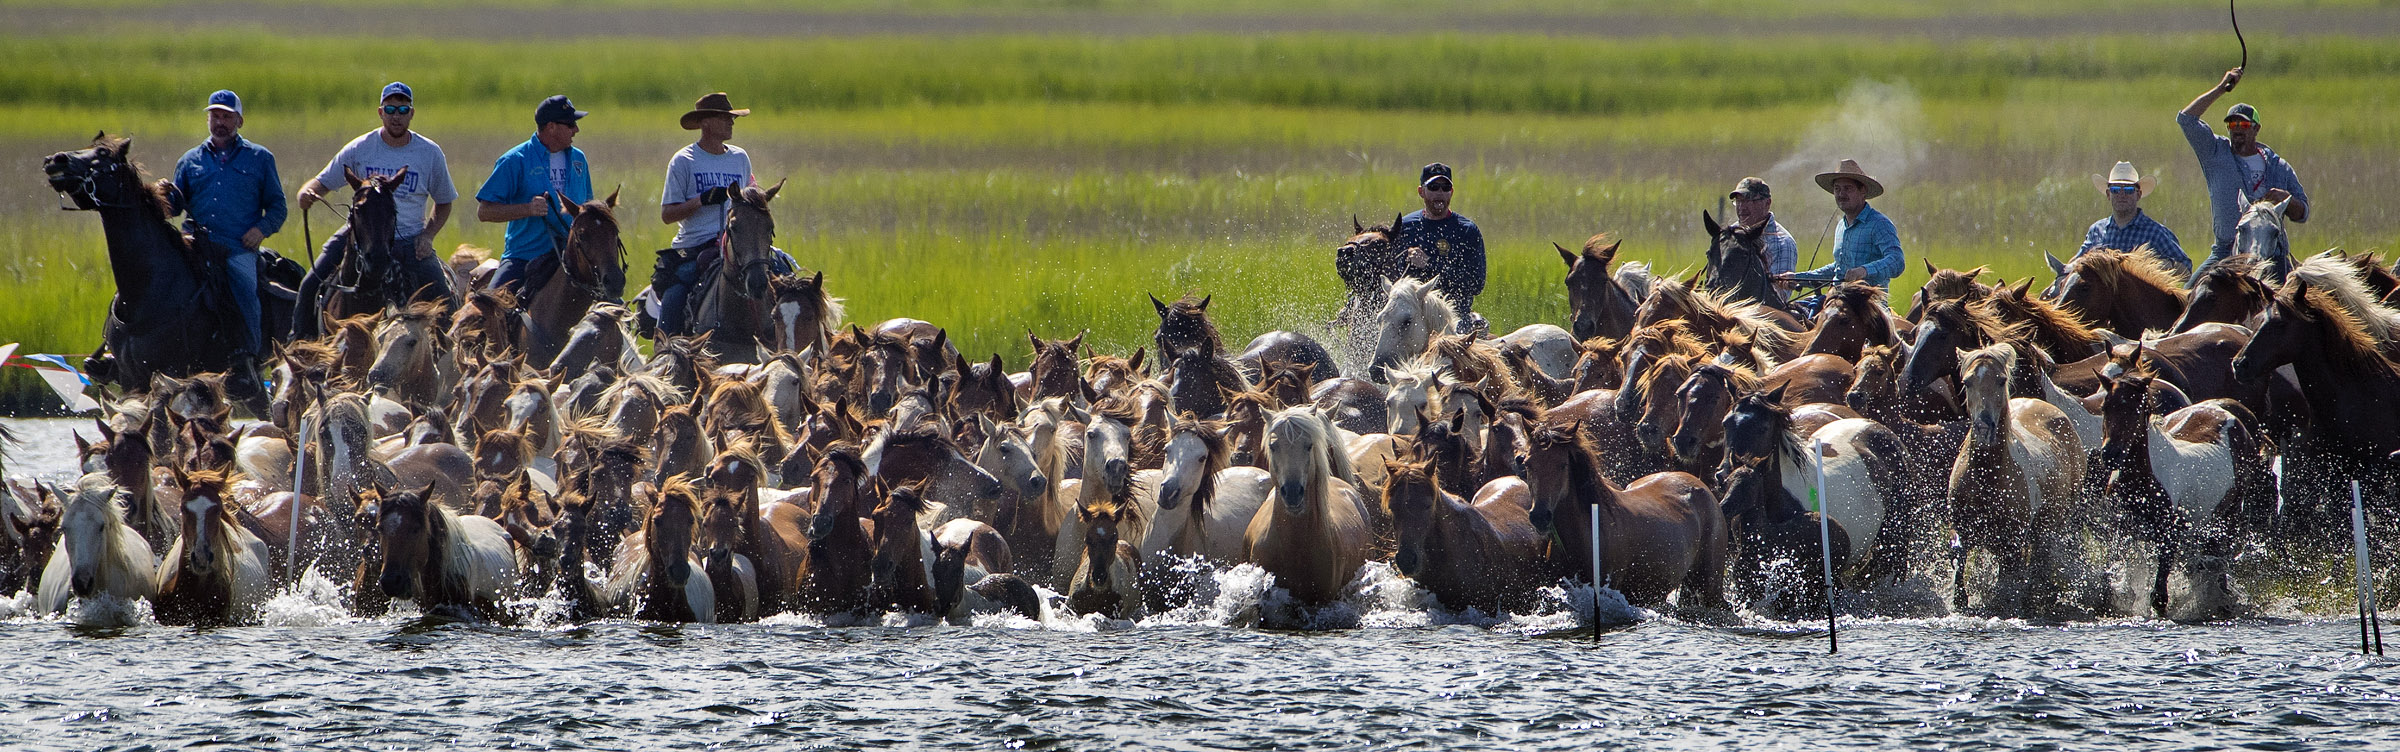 Volunteers with the Salt Water Cowboys push wild ponies and foals off of Assateague Island, Va., for their swim to nearby Chincoteague Island during the 94-year-old swim tradition of Pony Penning on Wednesday, July 24, 2019. During the event, the horses navigate through the water for a couple hundred yards, and, after resting, are walked down the streets of Chincoteague and eventually end up at a carnival where the foals are actioned.